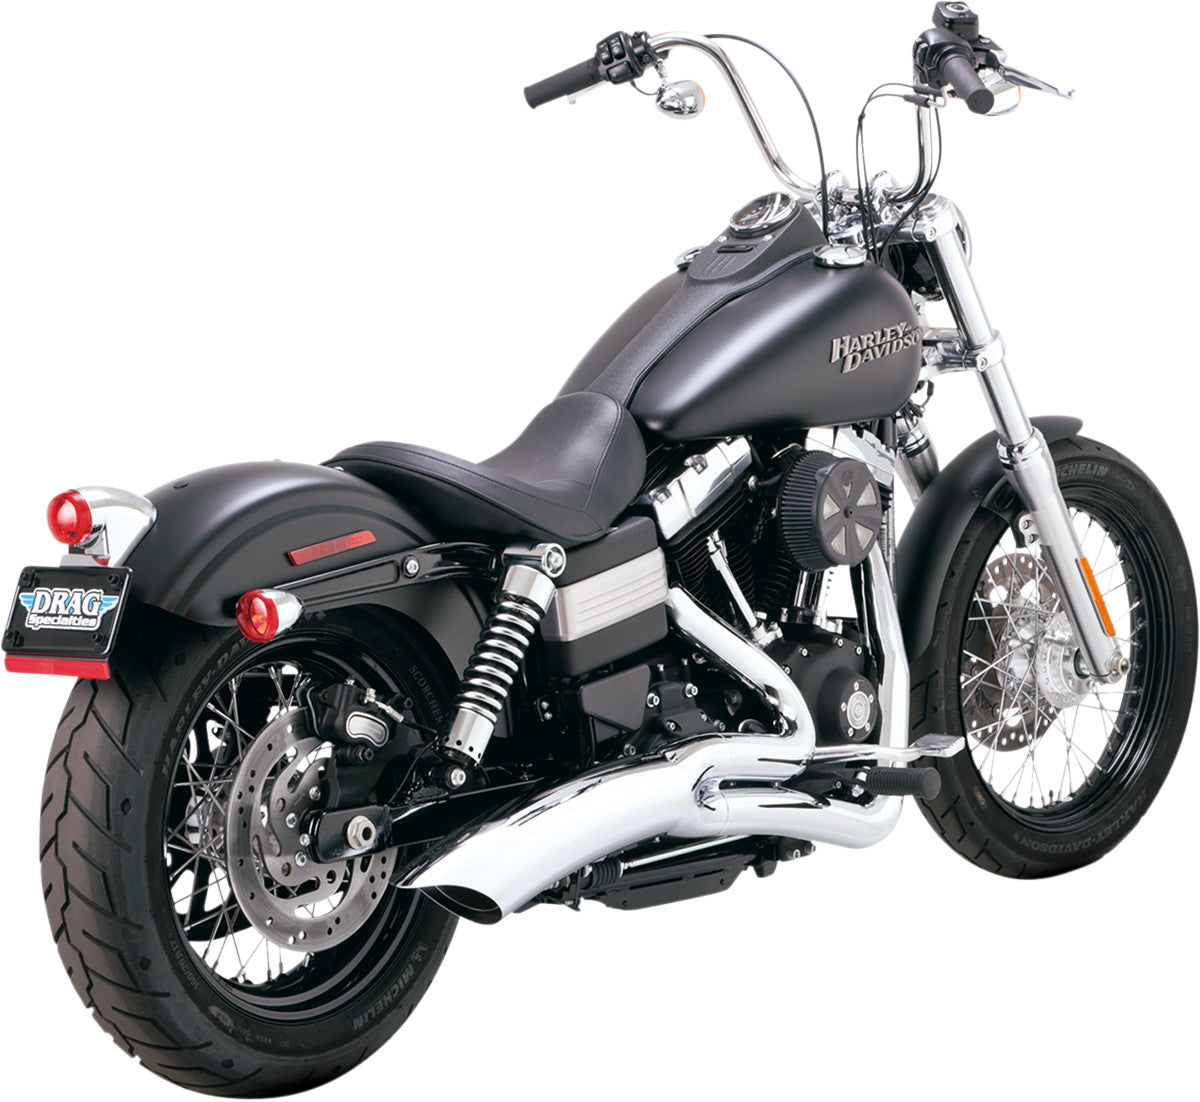 "VANCE & HINES BIG RADIUS 2-INTO-1 CATALYTIC (for 08-10 FXST/FLST 96"" AND 103"" models, will also fit FXDB/FXDC/FXDL/FXDWG if passenger pegs are removed)"